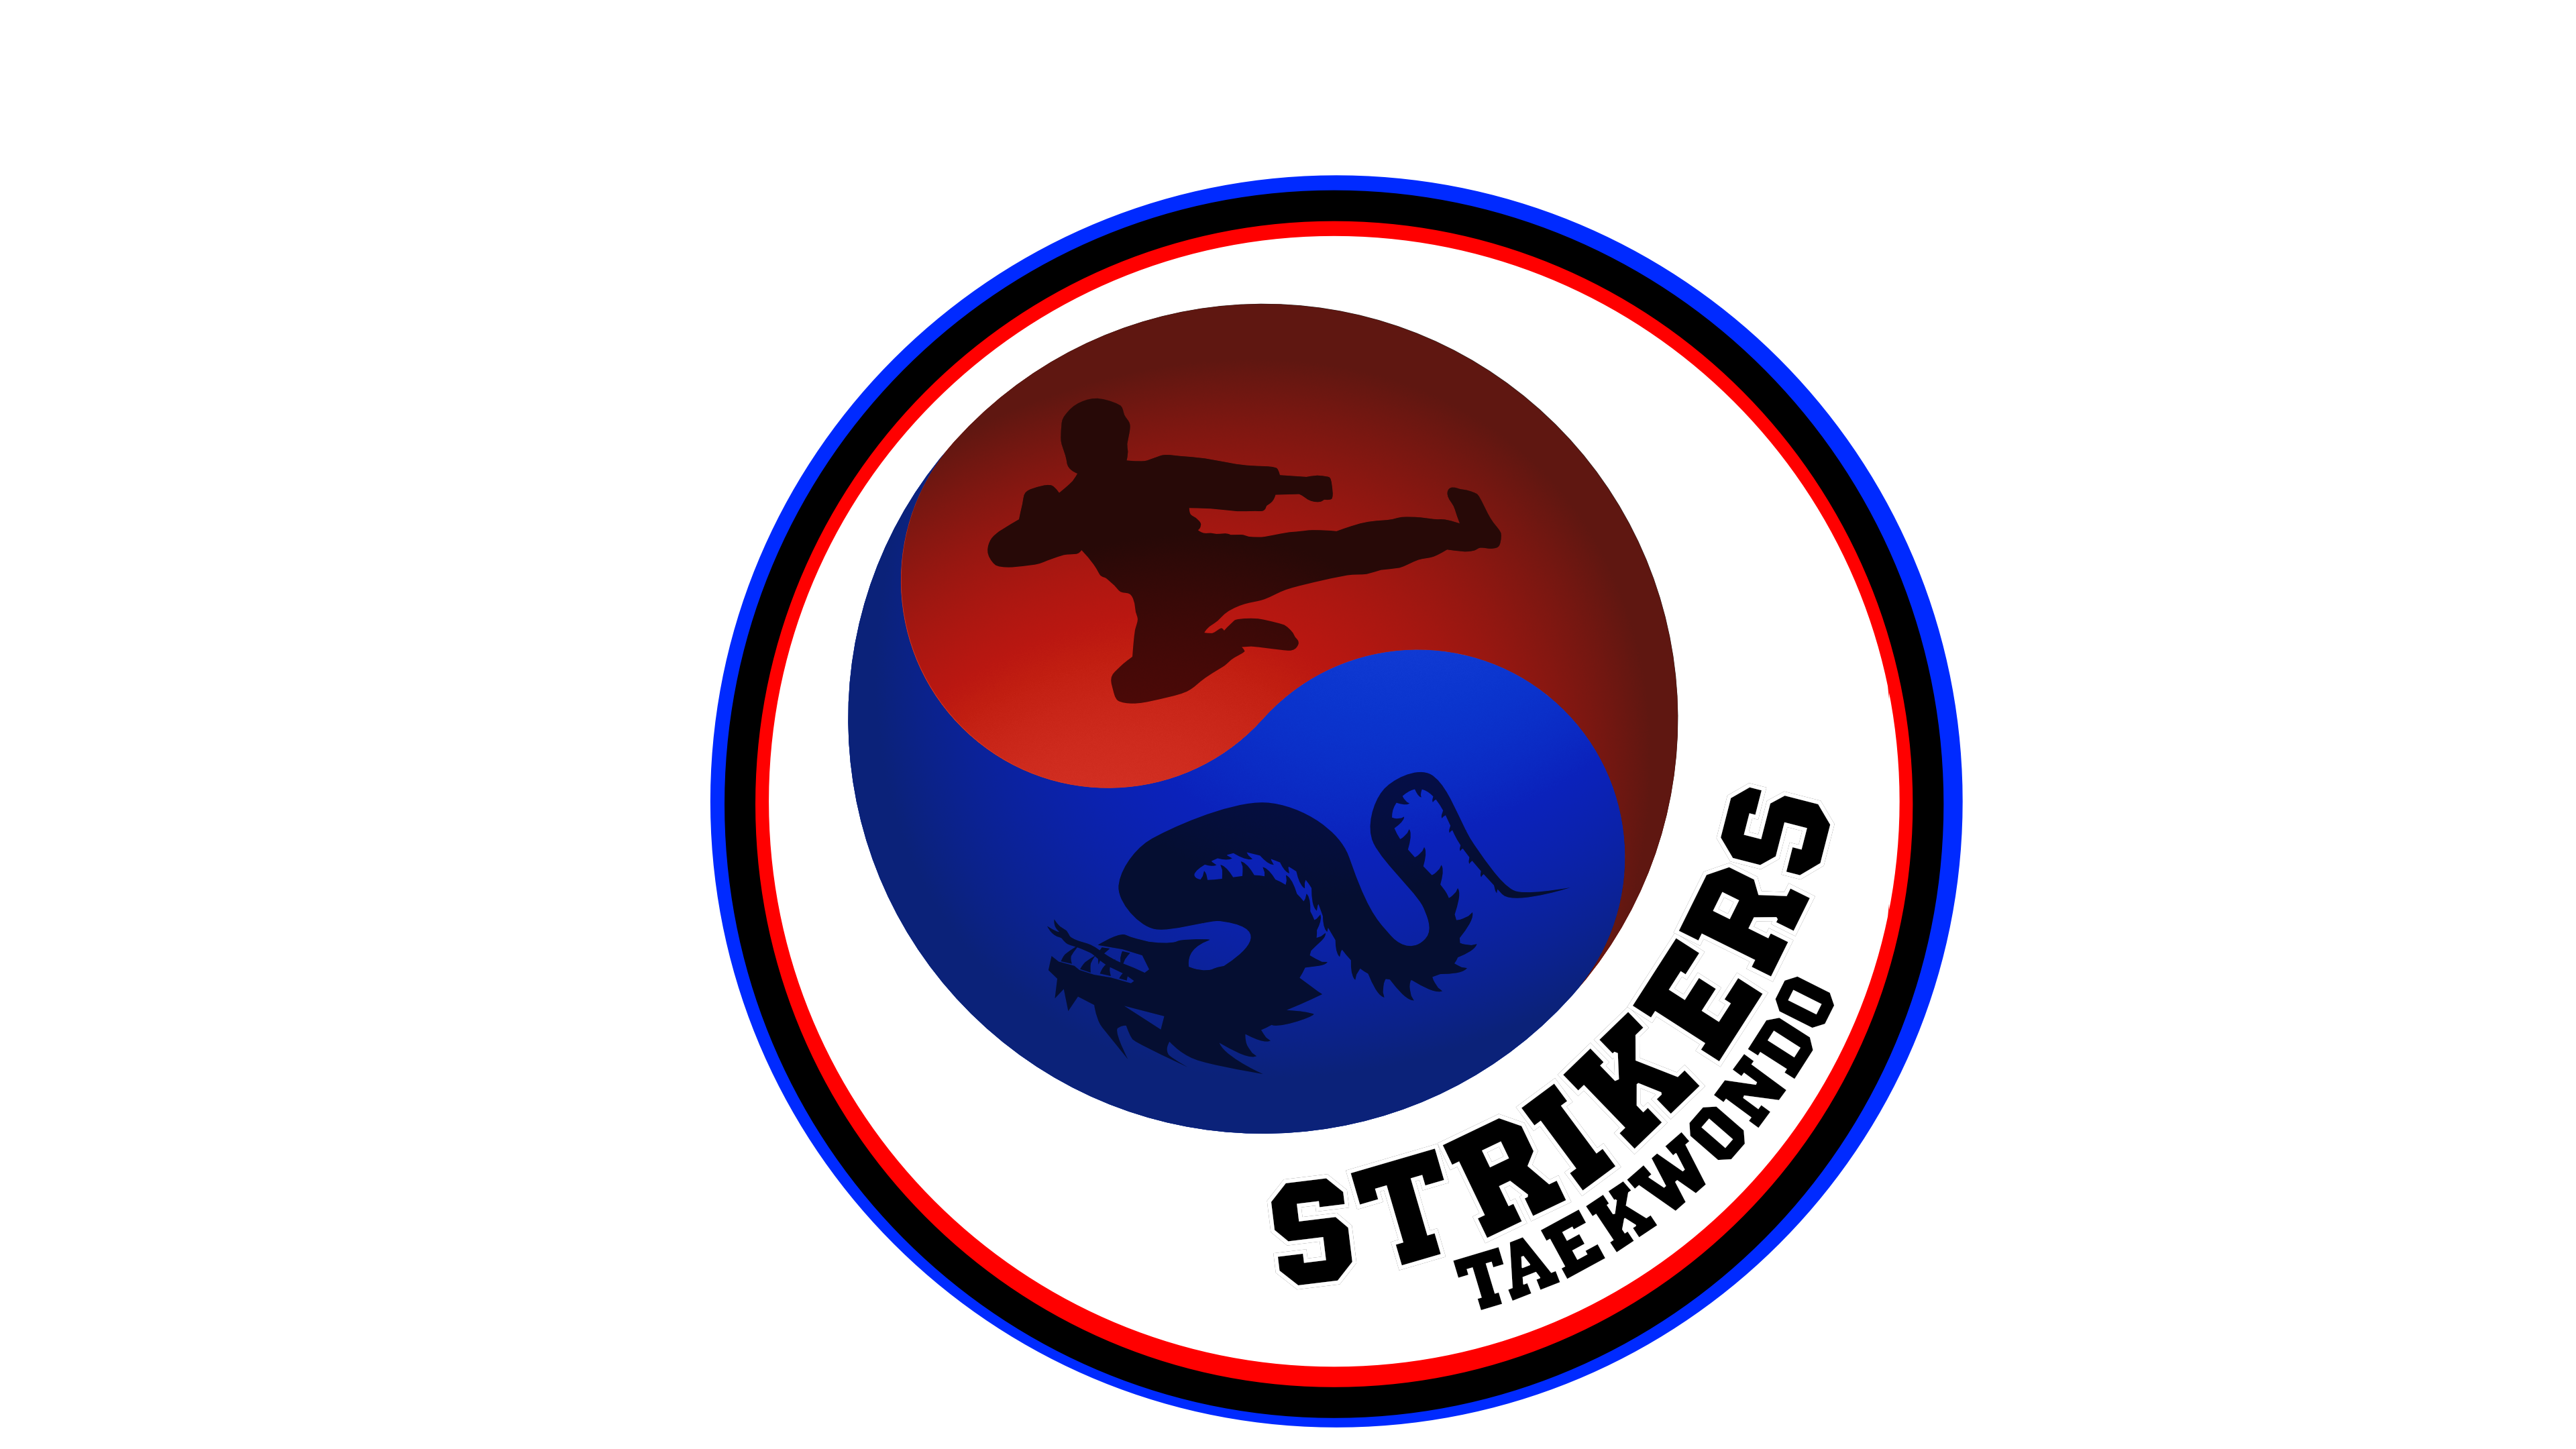 Welcome to Strikers Taekwondo